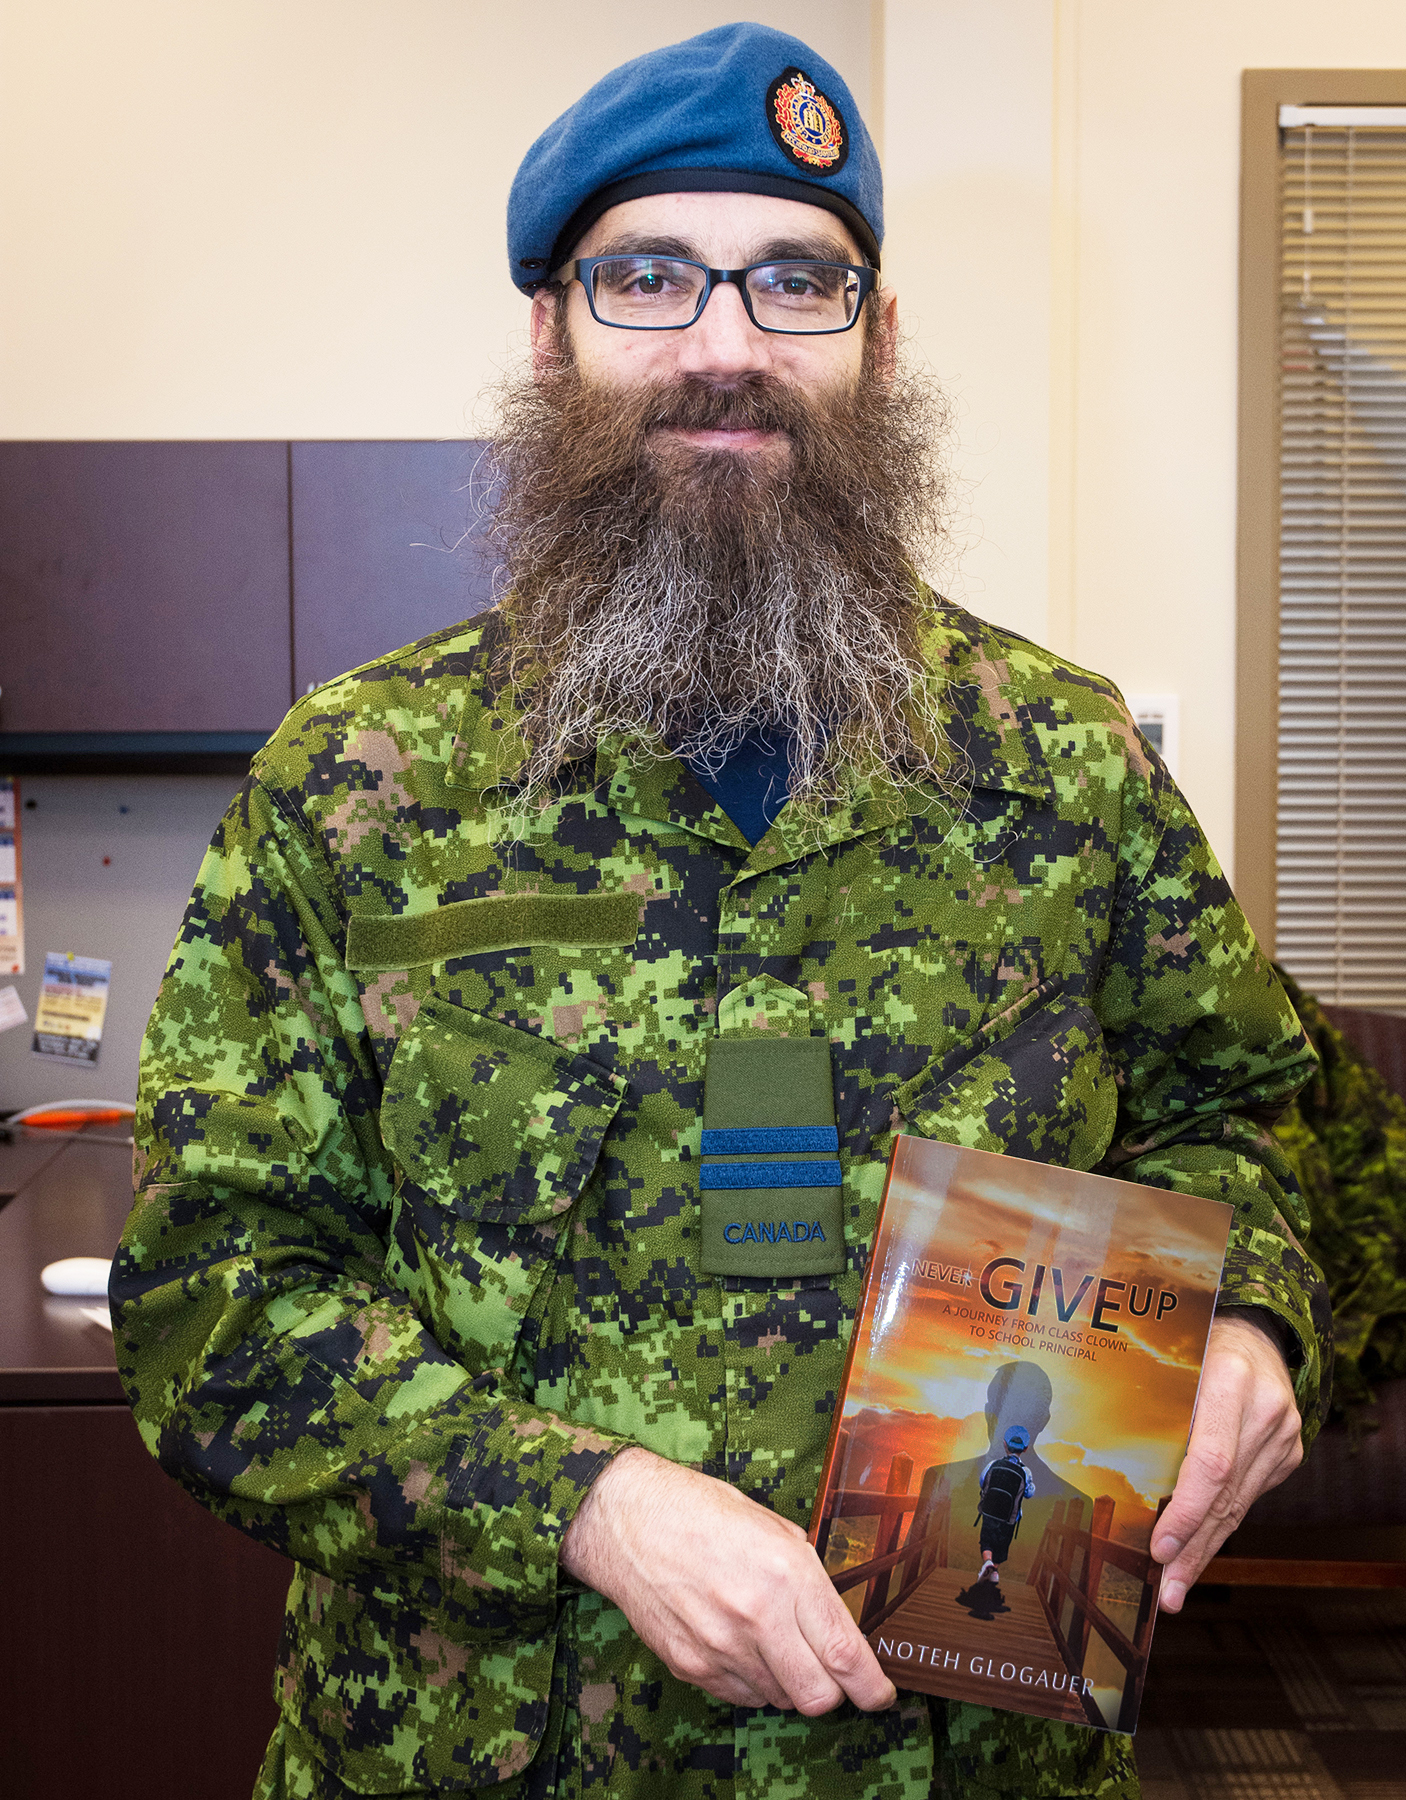 A bearded man wearing a military uniform holds a book.